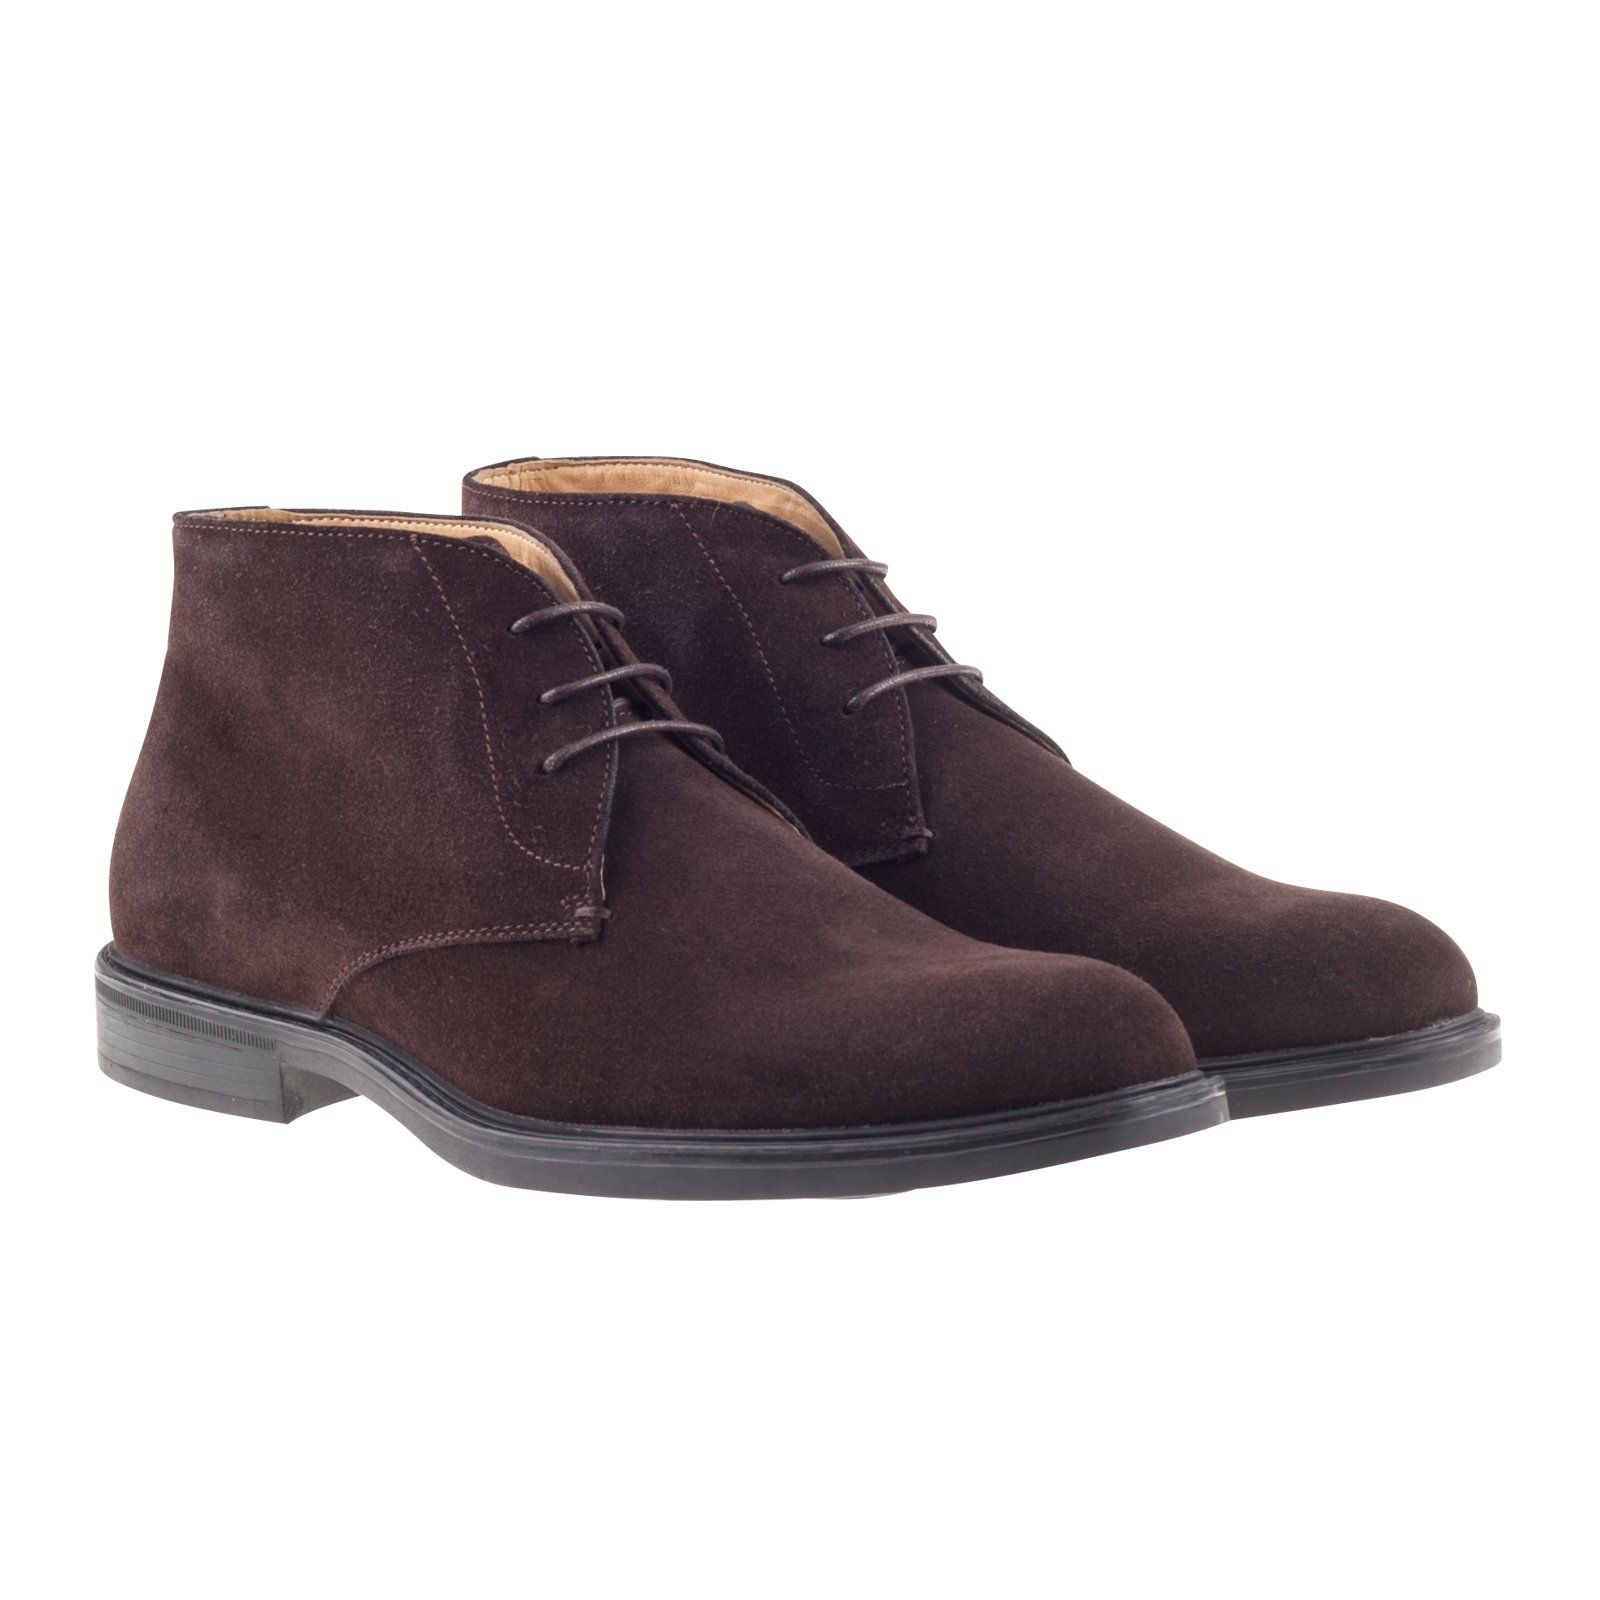 0b1a7a8ca1521 Steptronic Ghia Brown Suede Lace Up Chukka Boots with Sheepskin lining